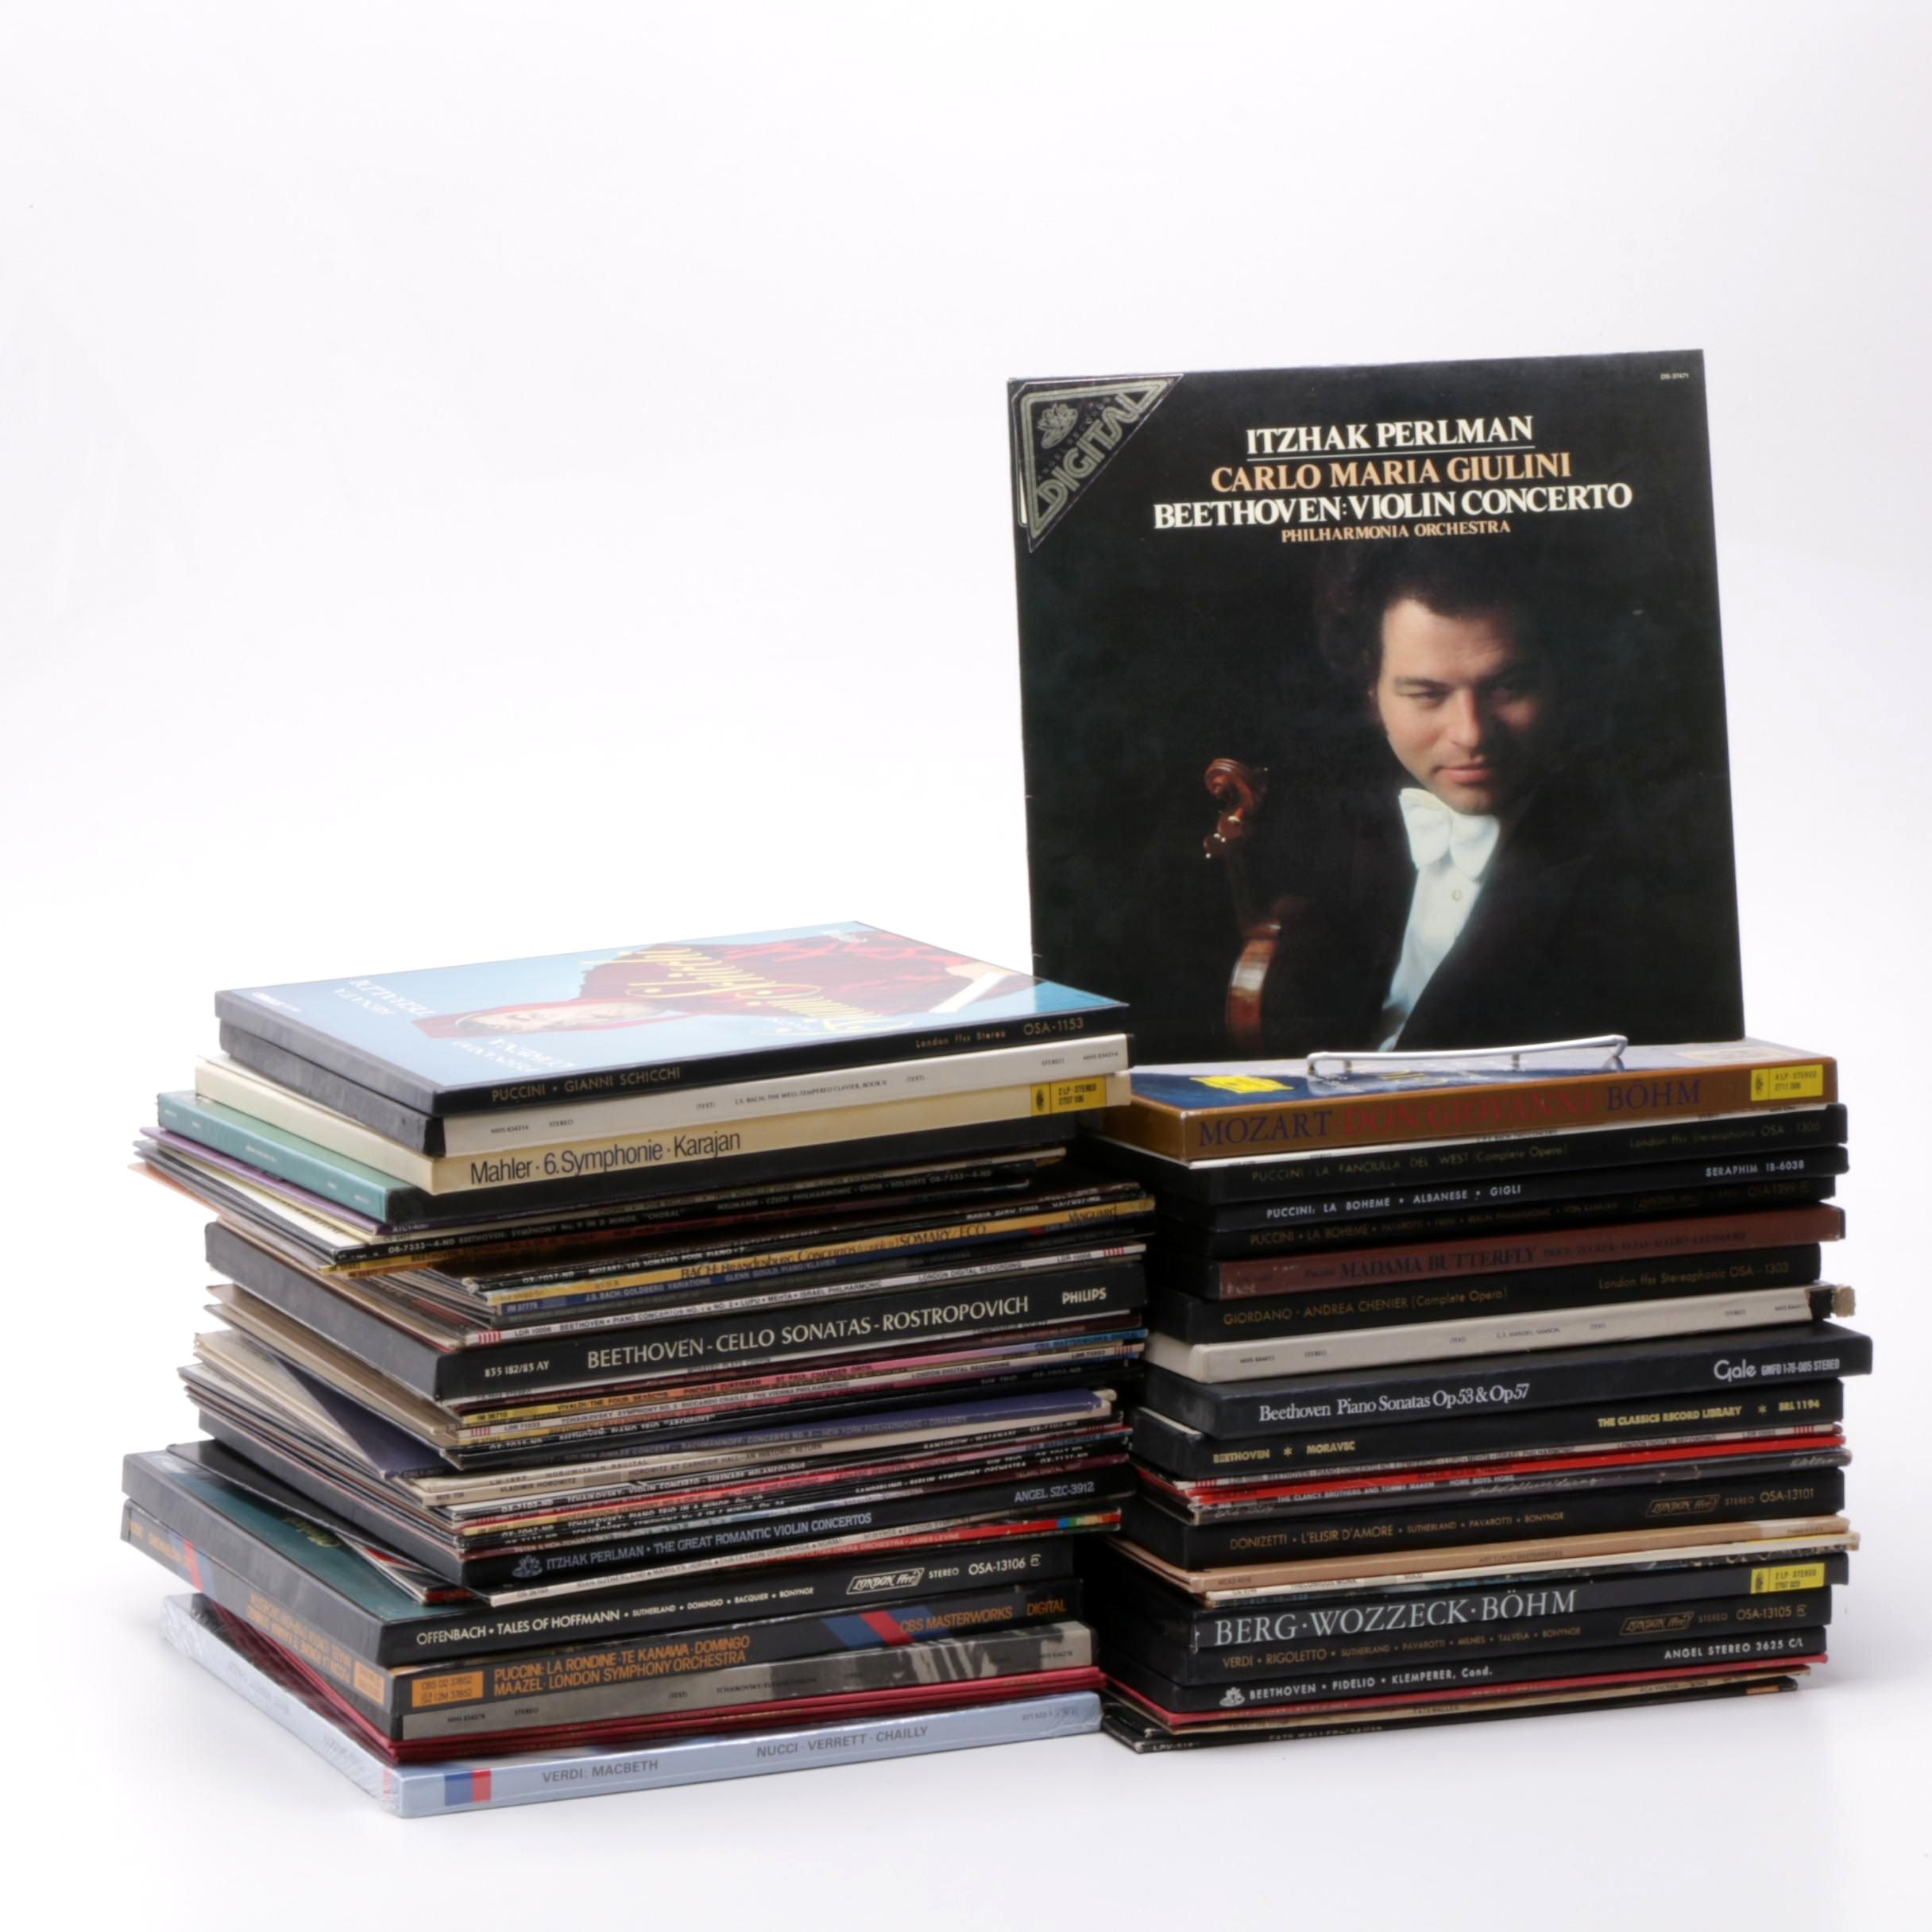 Classical and Jazz Vinyl LPs Including Beethoven, Mahler and Puccini